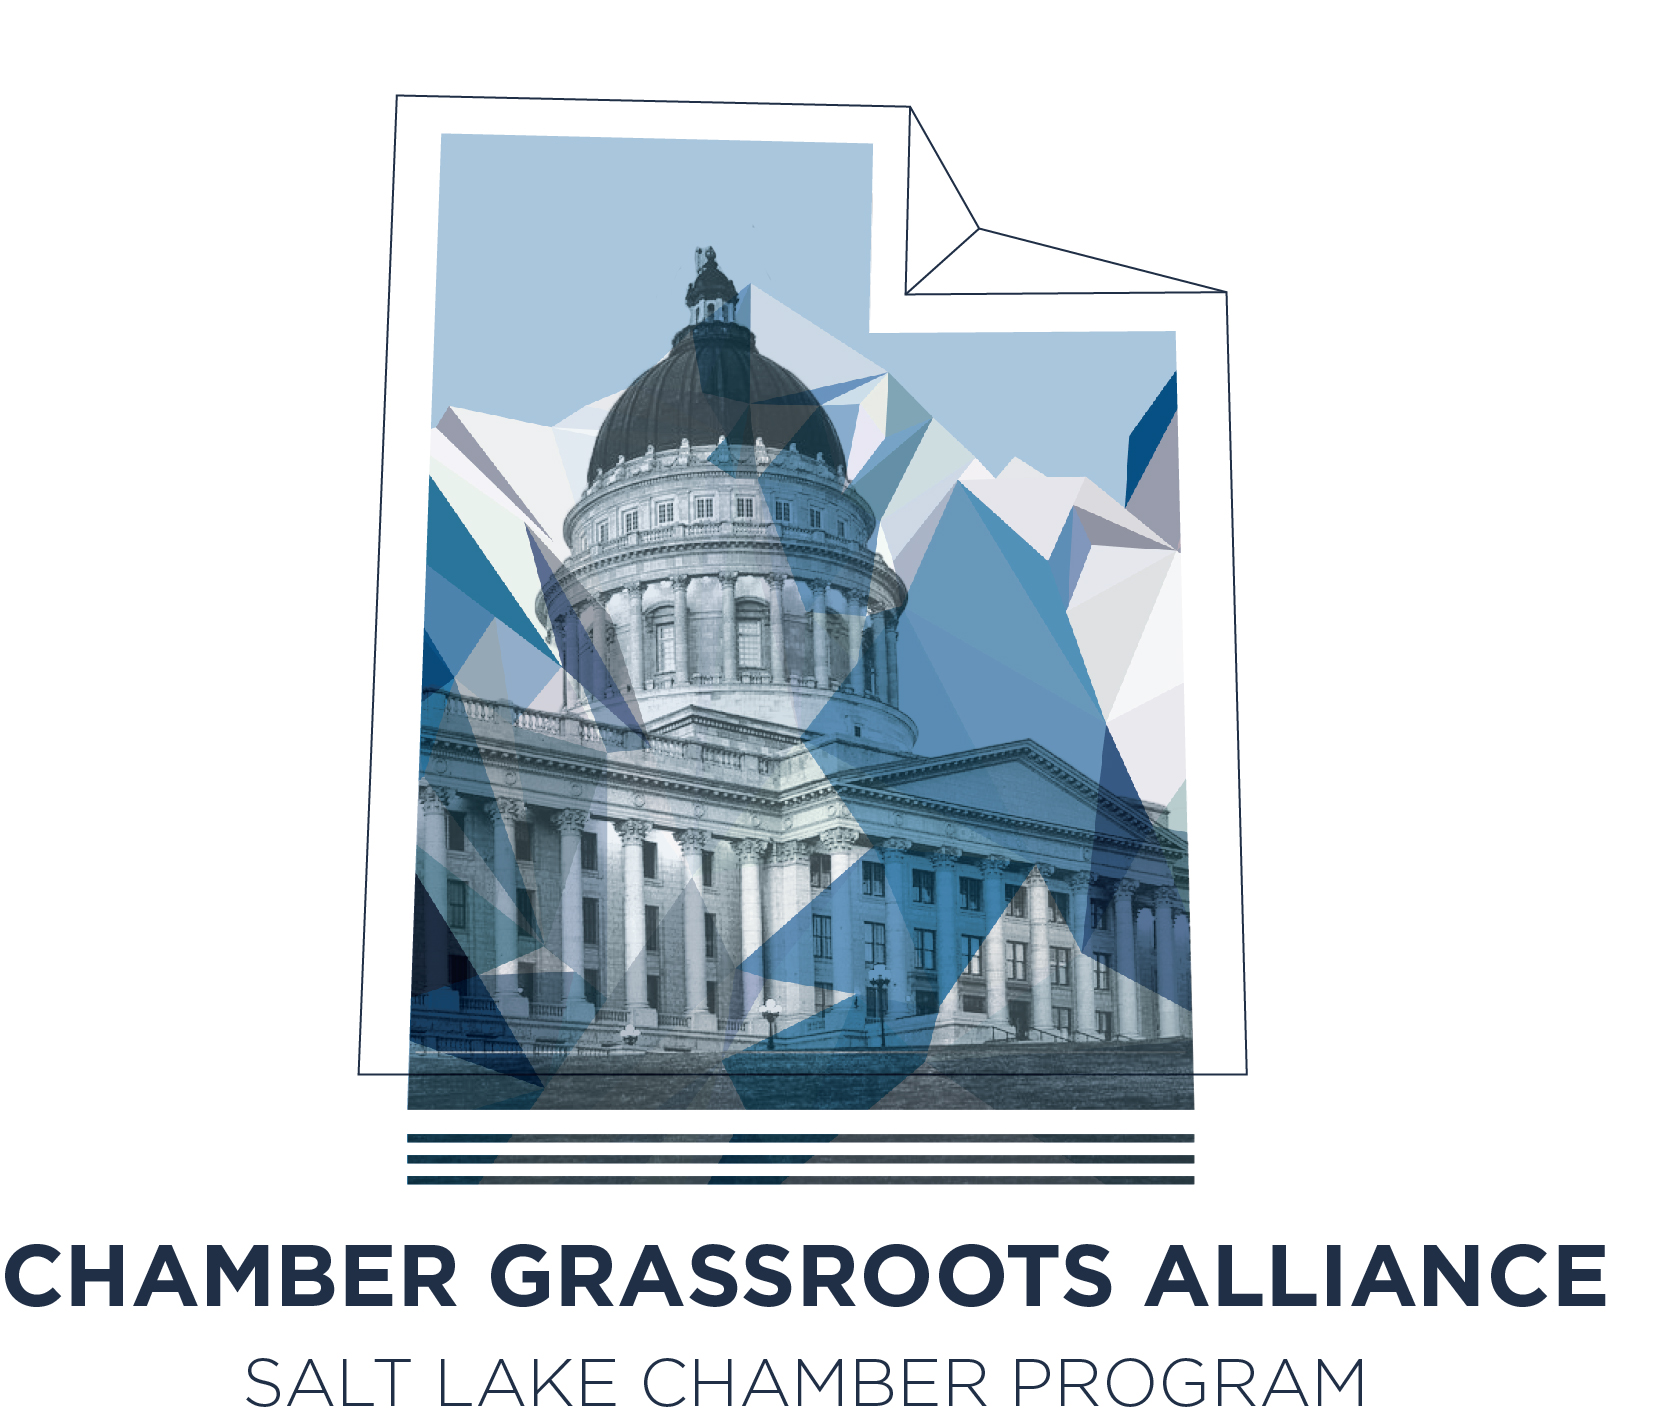 JANUARY 2017: CHAMBER GRASSROOTS ALLIANCE CREATED